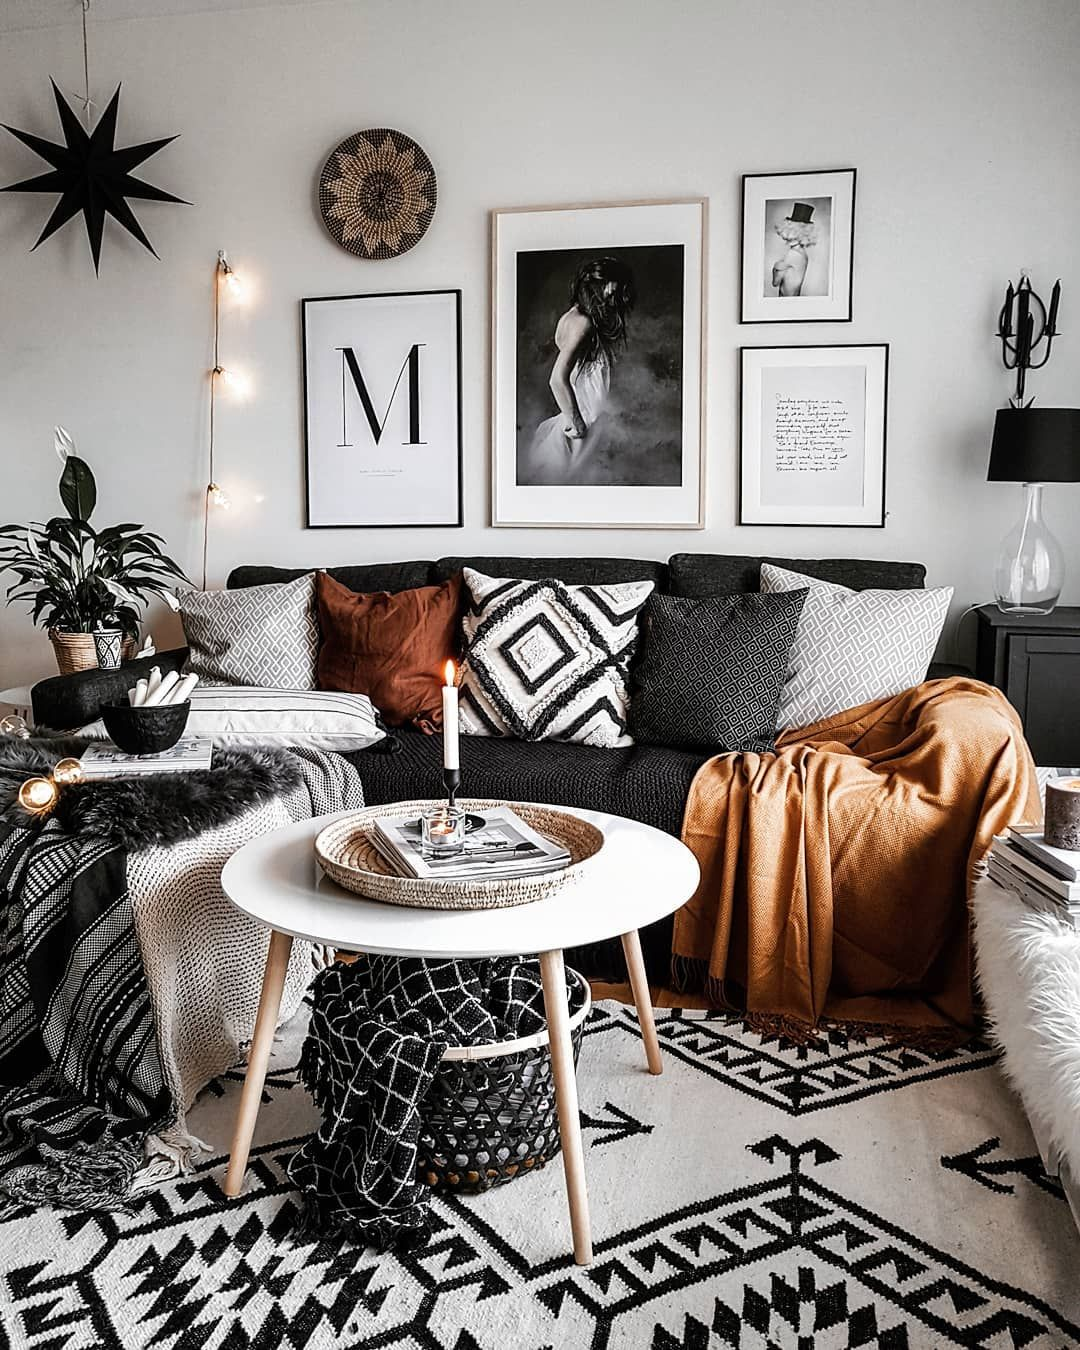 Best Monochrome Bohemian Scandi On Instagram Bohemian Living Room Decor Boho Living Room Room 400 x 300